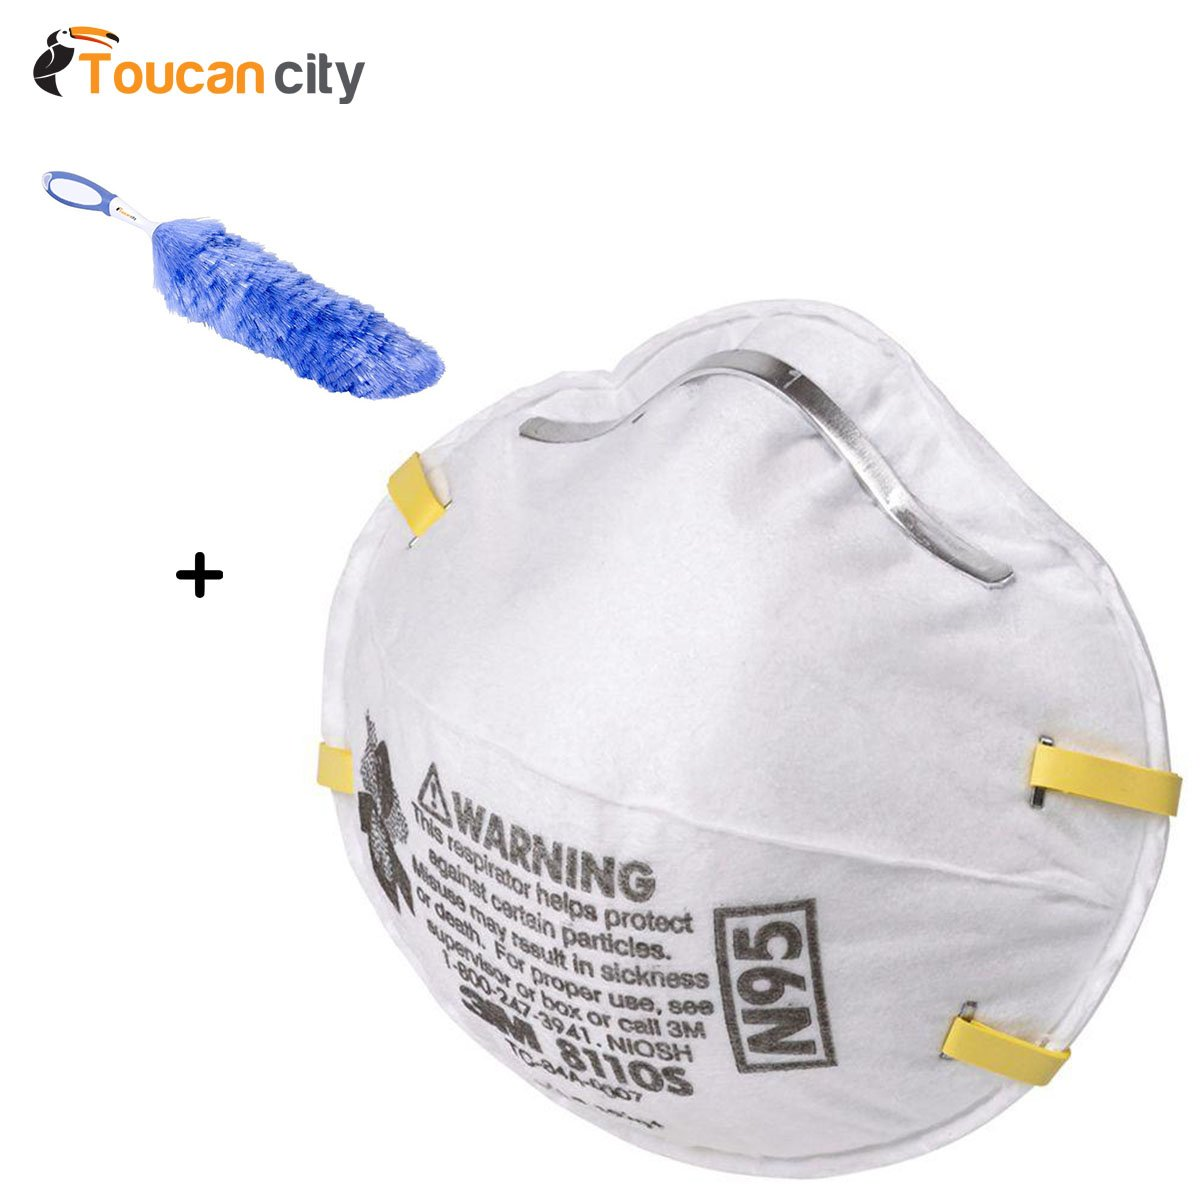 3M N95 Sanding Painted Surfaces Respirator Dust Masks ((20-Pack) (Case of 4)) 8110PB1-A and Toucan City Flexible Static Duster